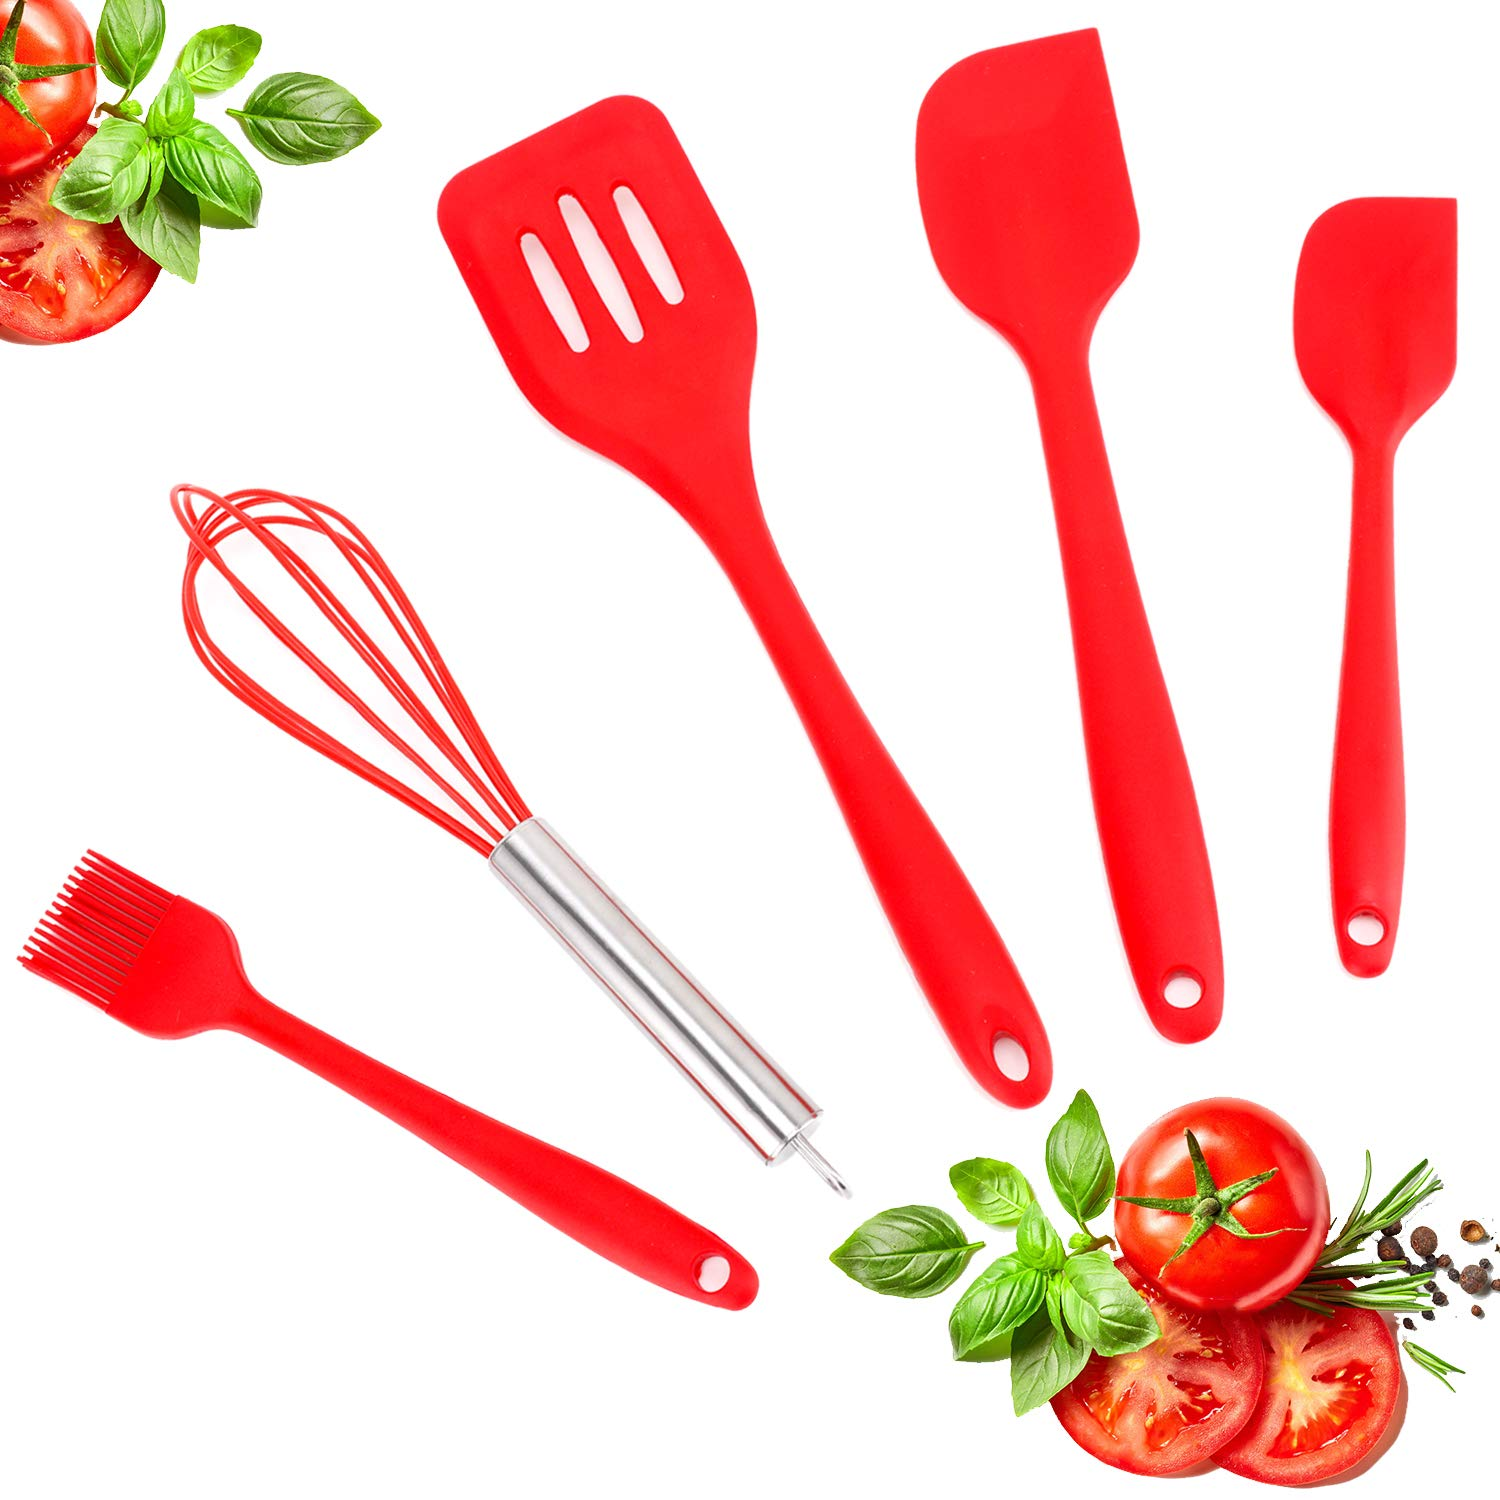 Silicone Kitchen Utensils Set, Premium 5 pcs Heat-Resistant Silicone Cooking Utensils, Non-Stick Kitchen Utensils-Baking BBQ Cooking Tool Kit With Spatula, Basting Brush,Whisk and Turner(red) Distana